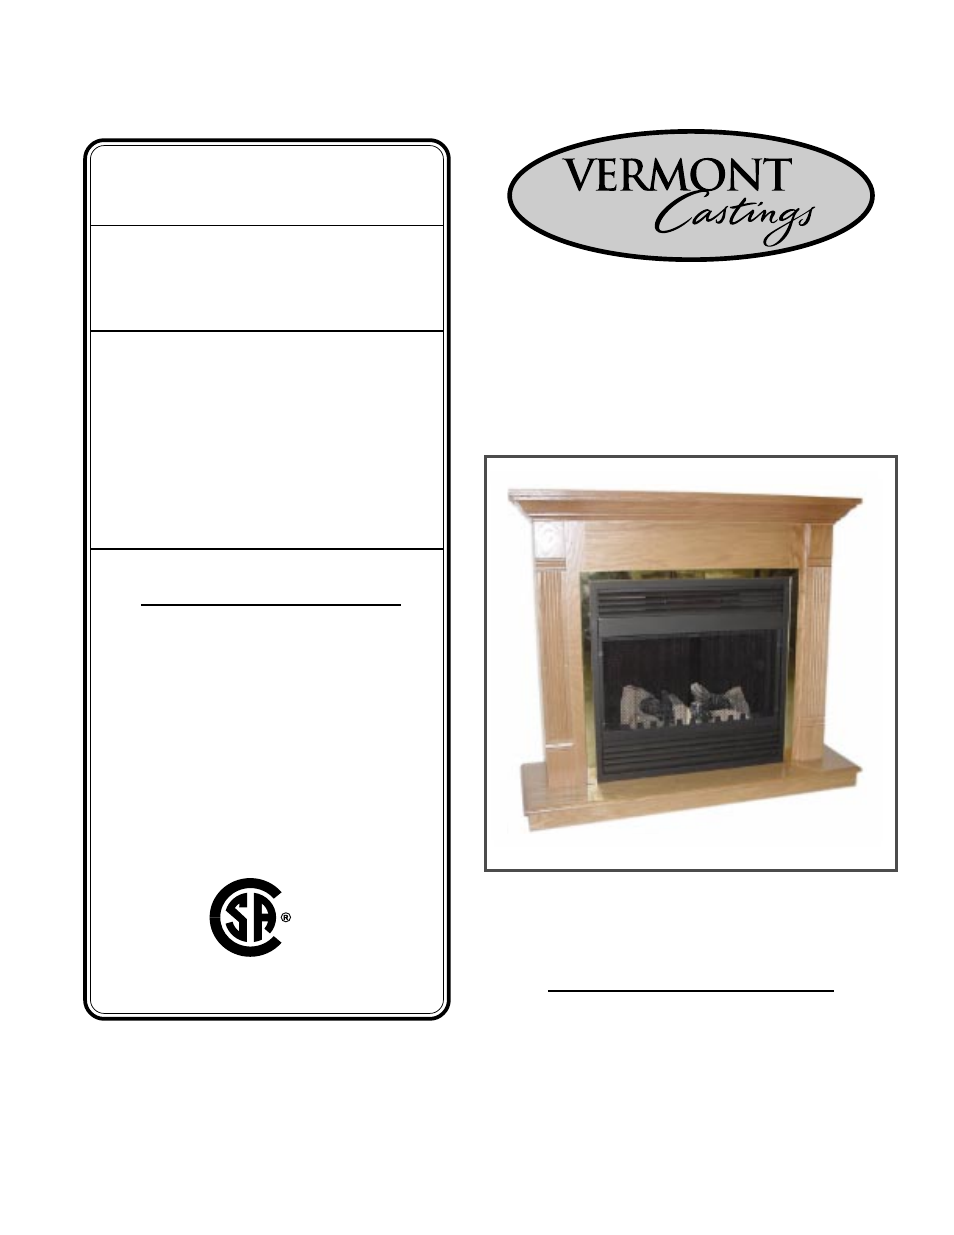 Vermont Casting DEFD26 User Manual | 11 pages | Also for: DEF